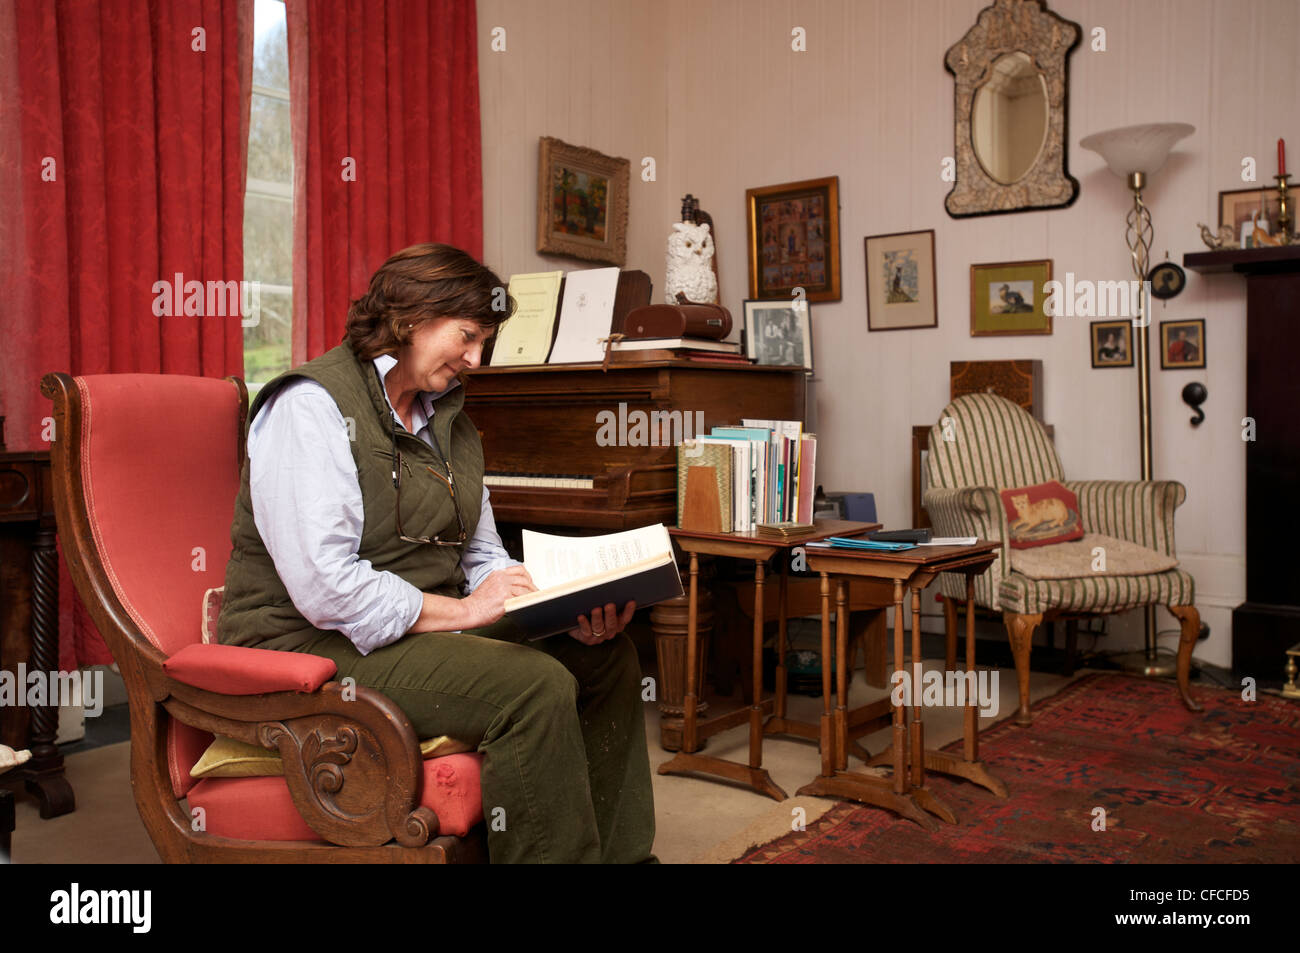 Archivist Magda Sagarzazu in Canna House, Canna, Inner Hebrides. The Island is owned by the Natural Trust for Scotland. - Stock Image